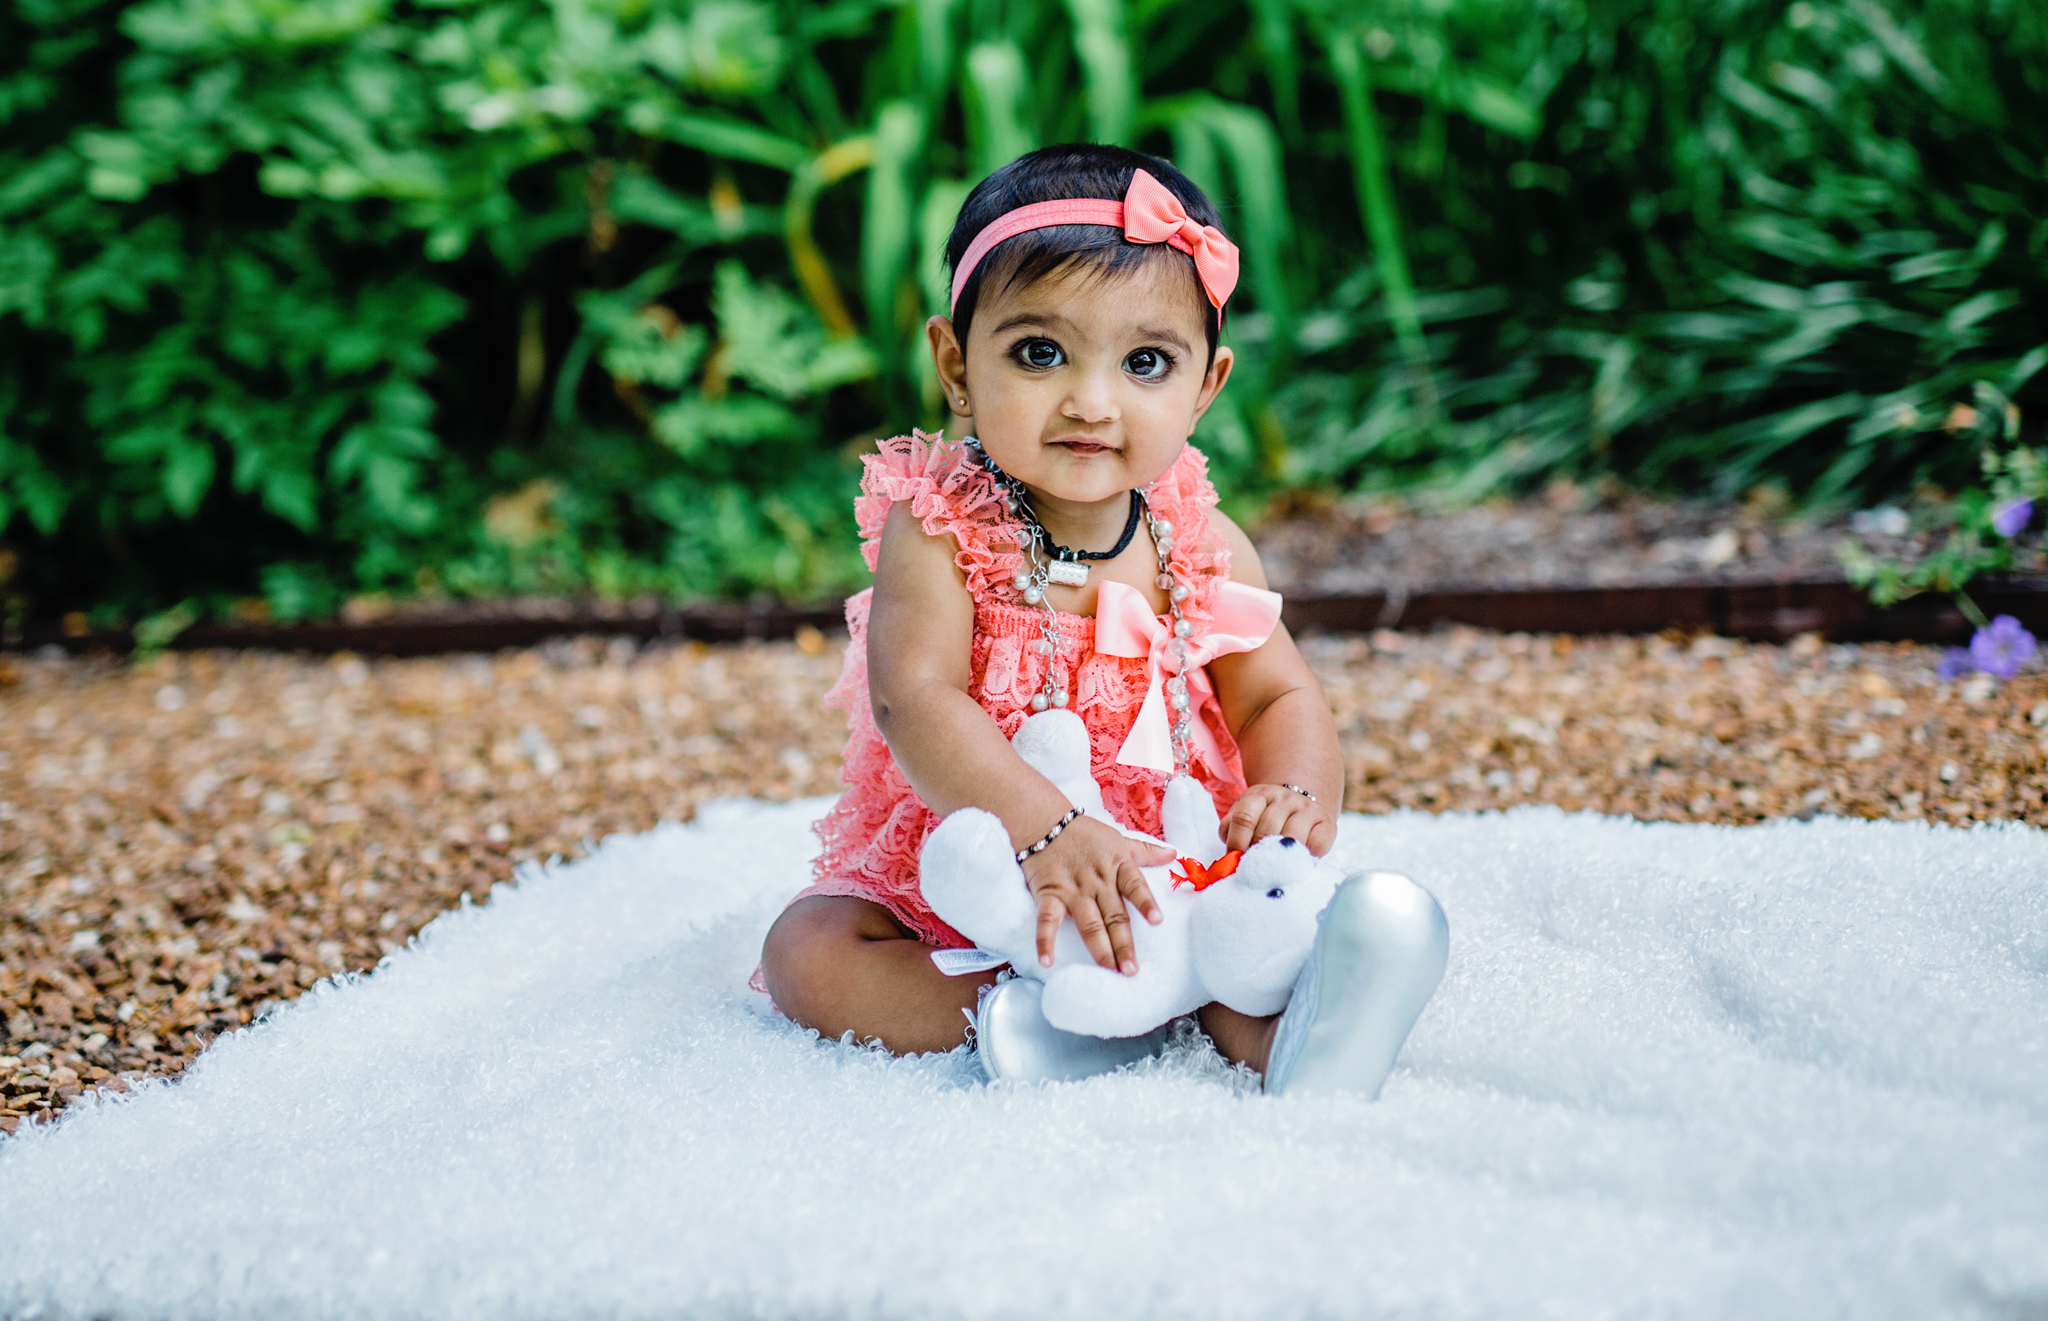 6 MONTHS OLD PRINCESS PHOTO SESSION @ CANTIGNY PARK